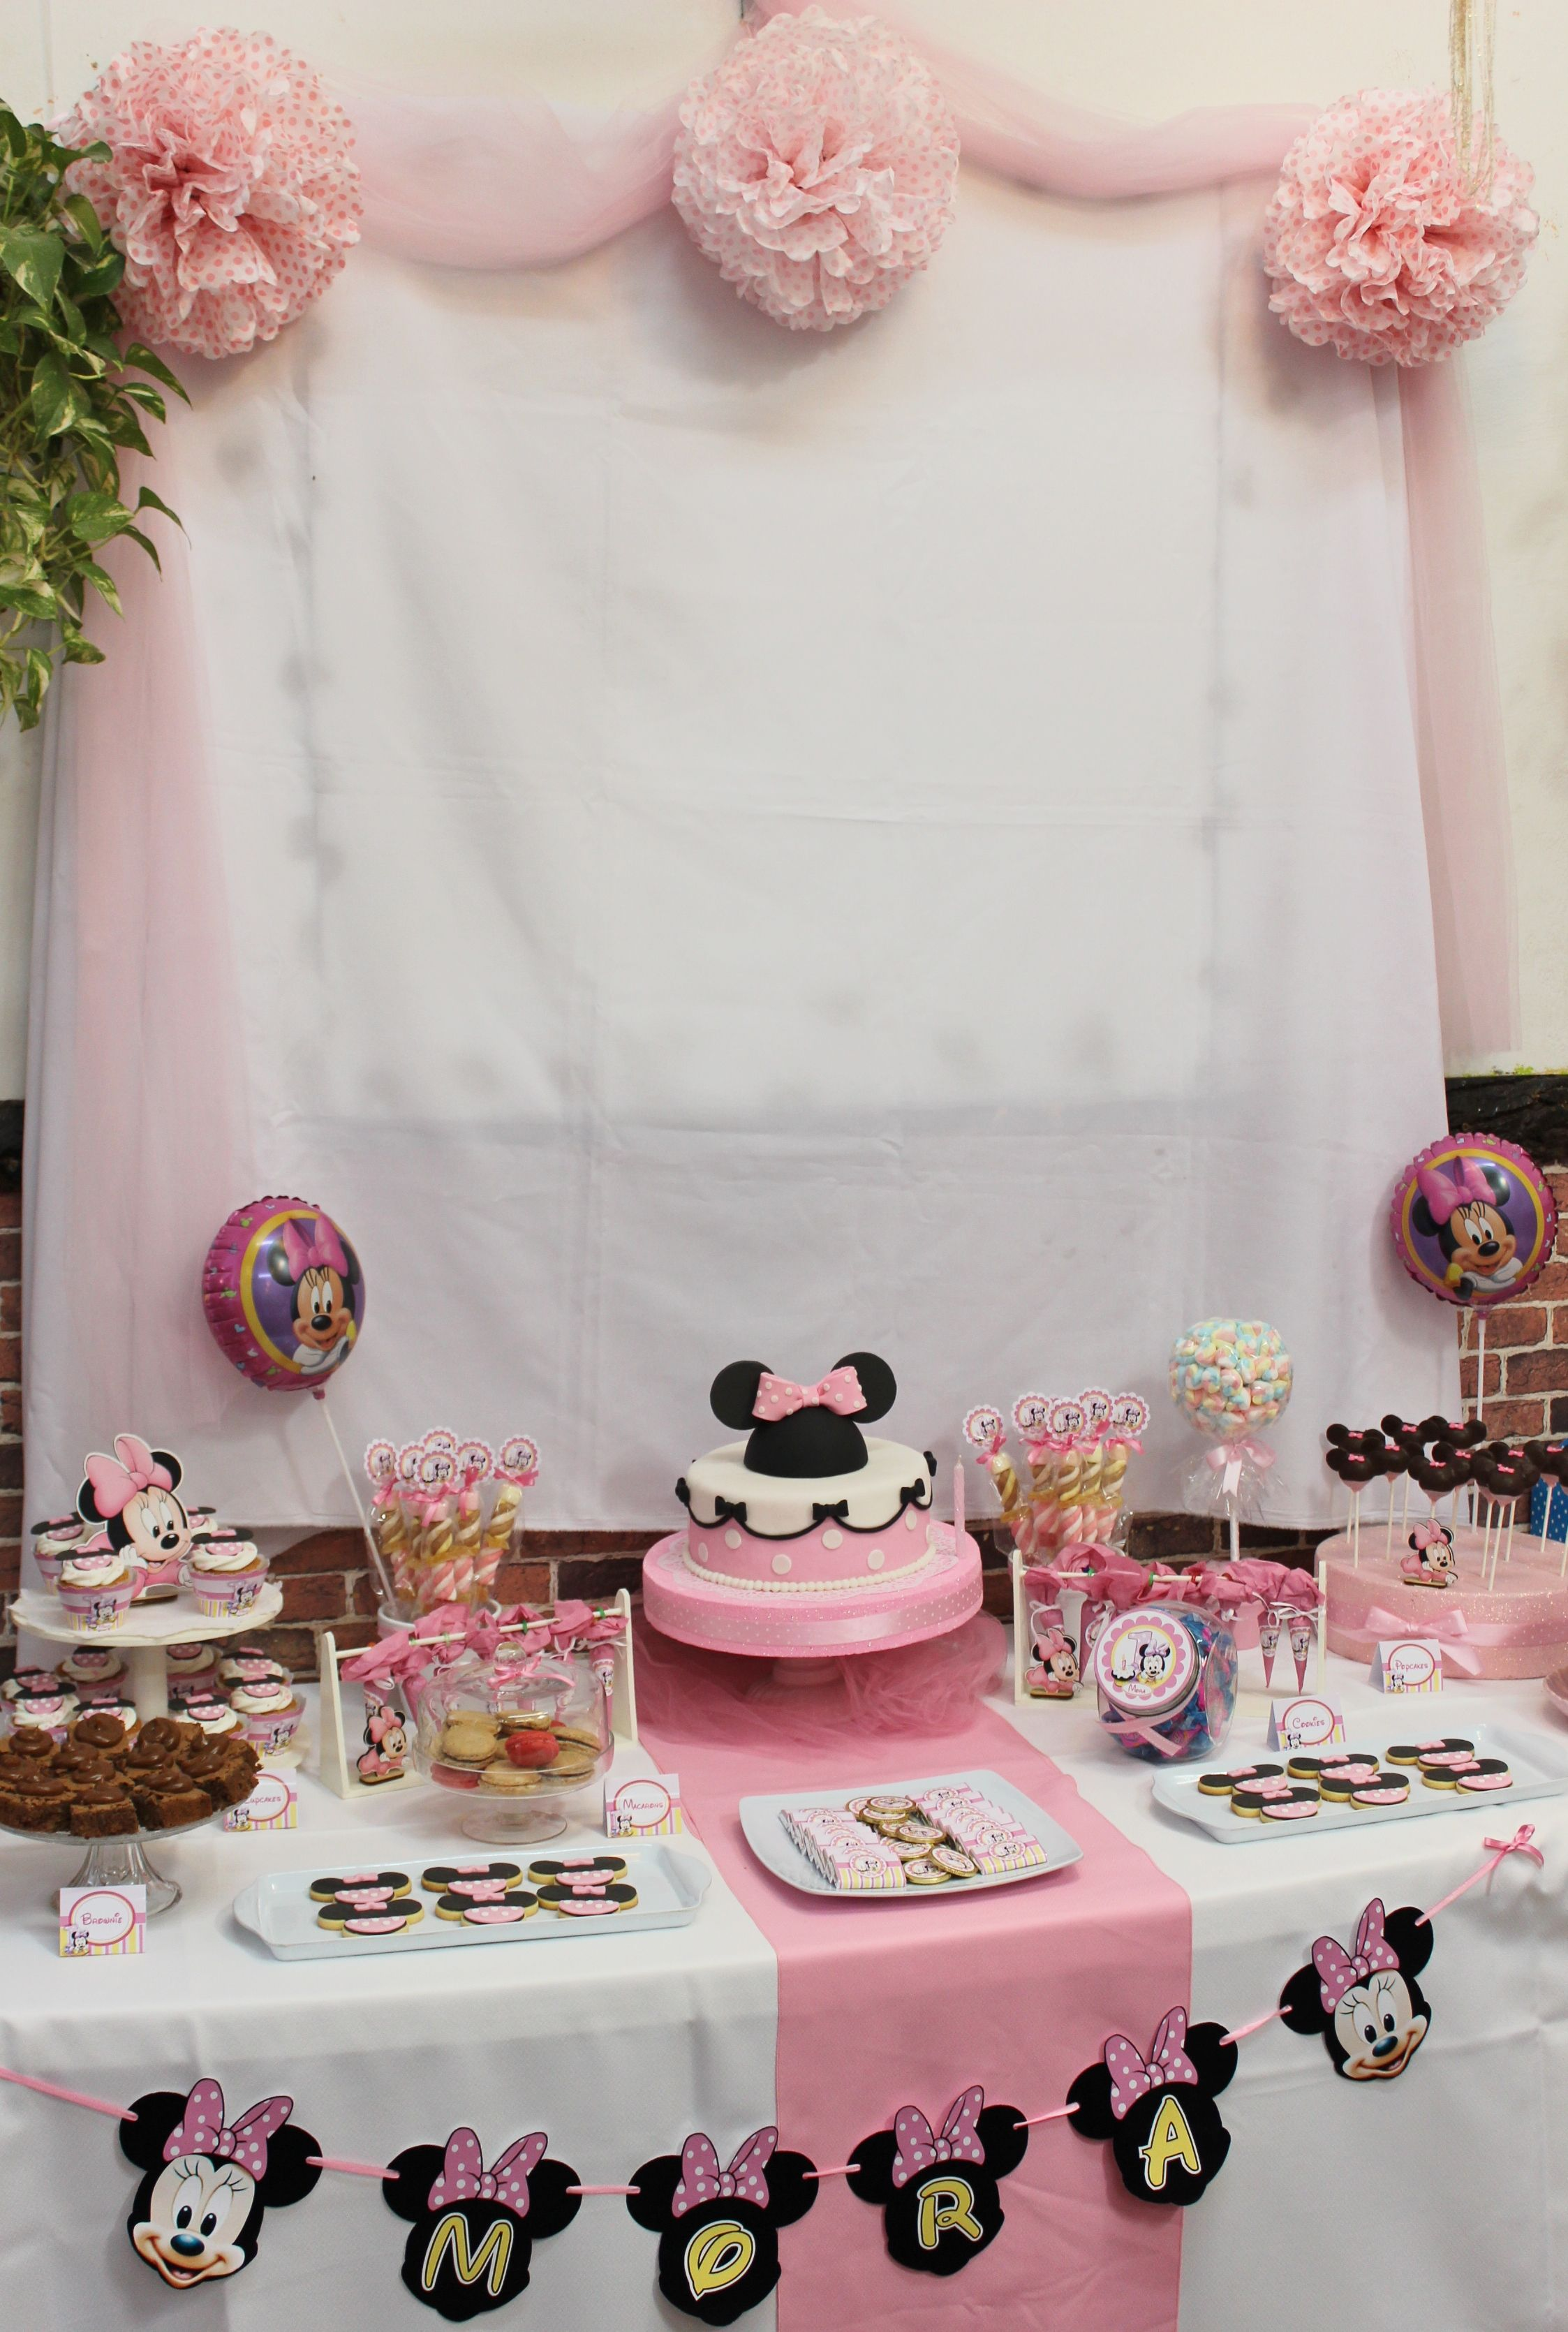 decoration anniversaire minnie mouse. Black Bedroom Furniture Sets. Home Design Ideas